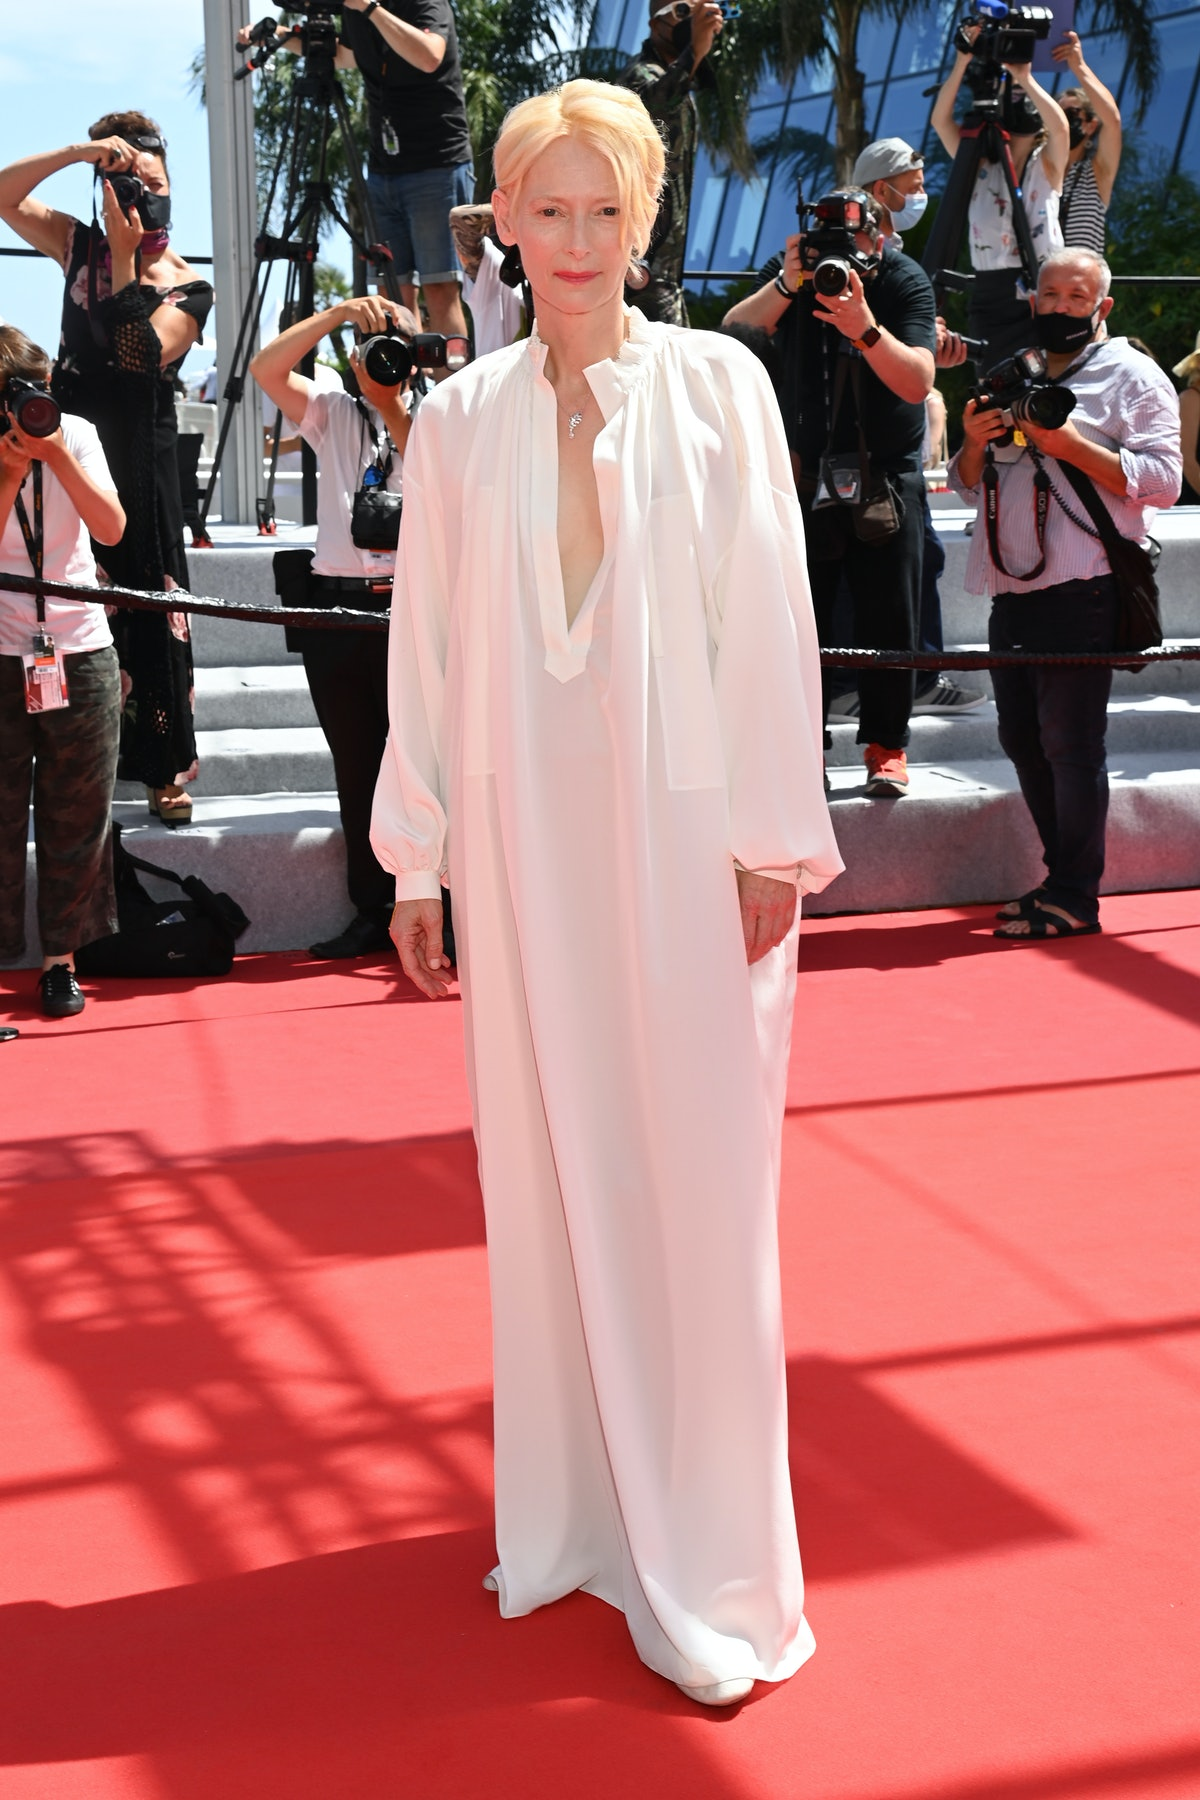 """CANNES, FRANCE - JULY 15: Tilda Swinton attends the """"Memoria"""" screening during the 74th annual Cannes Film Festival on July 15, 2021 in Cannes, France. (Photo by Pascal Le Segretain/Getty Images)"""